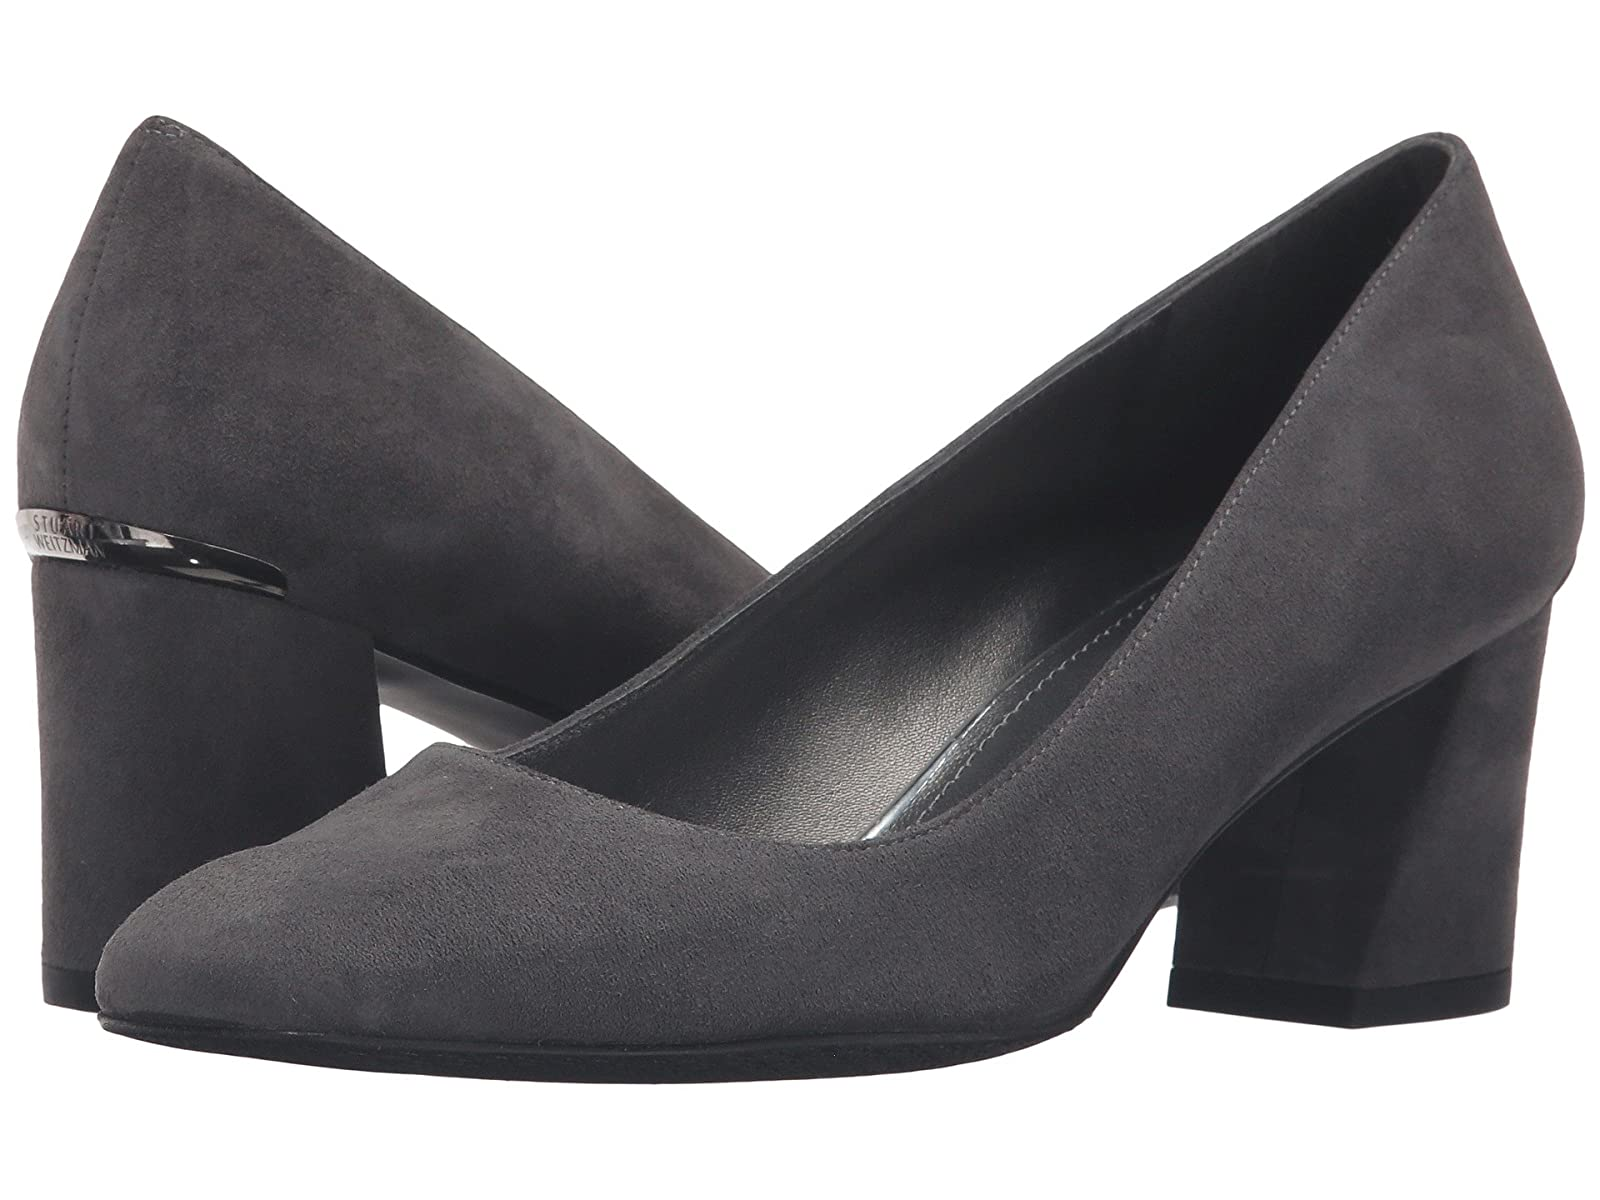 Stuart Weitzman MarymidCheap and distinctive eye-catching shoes